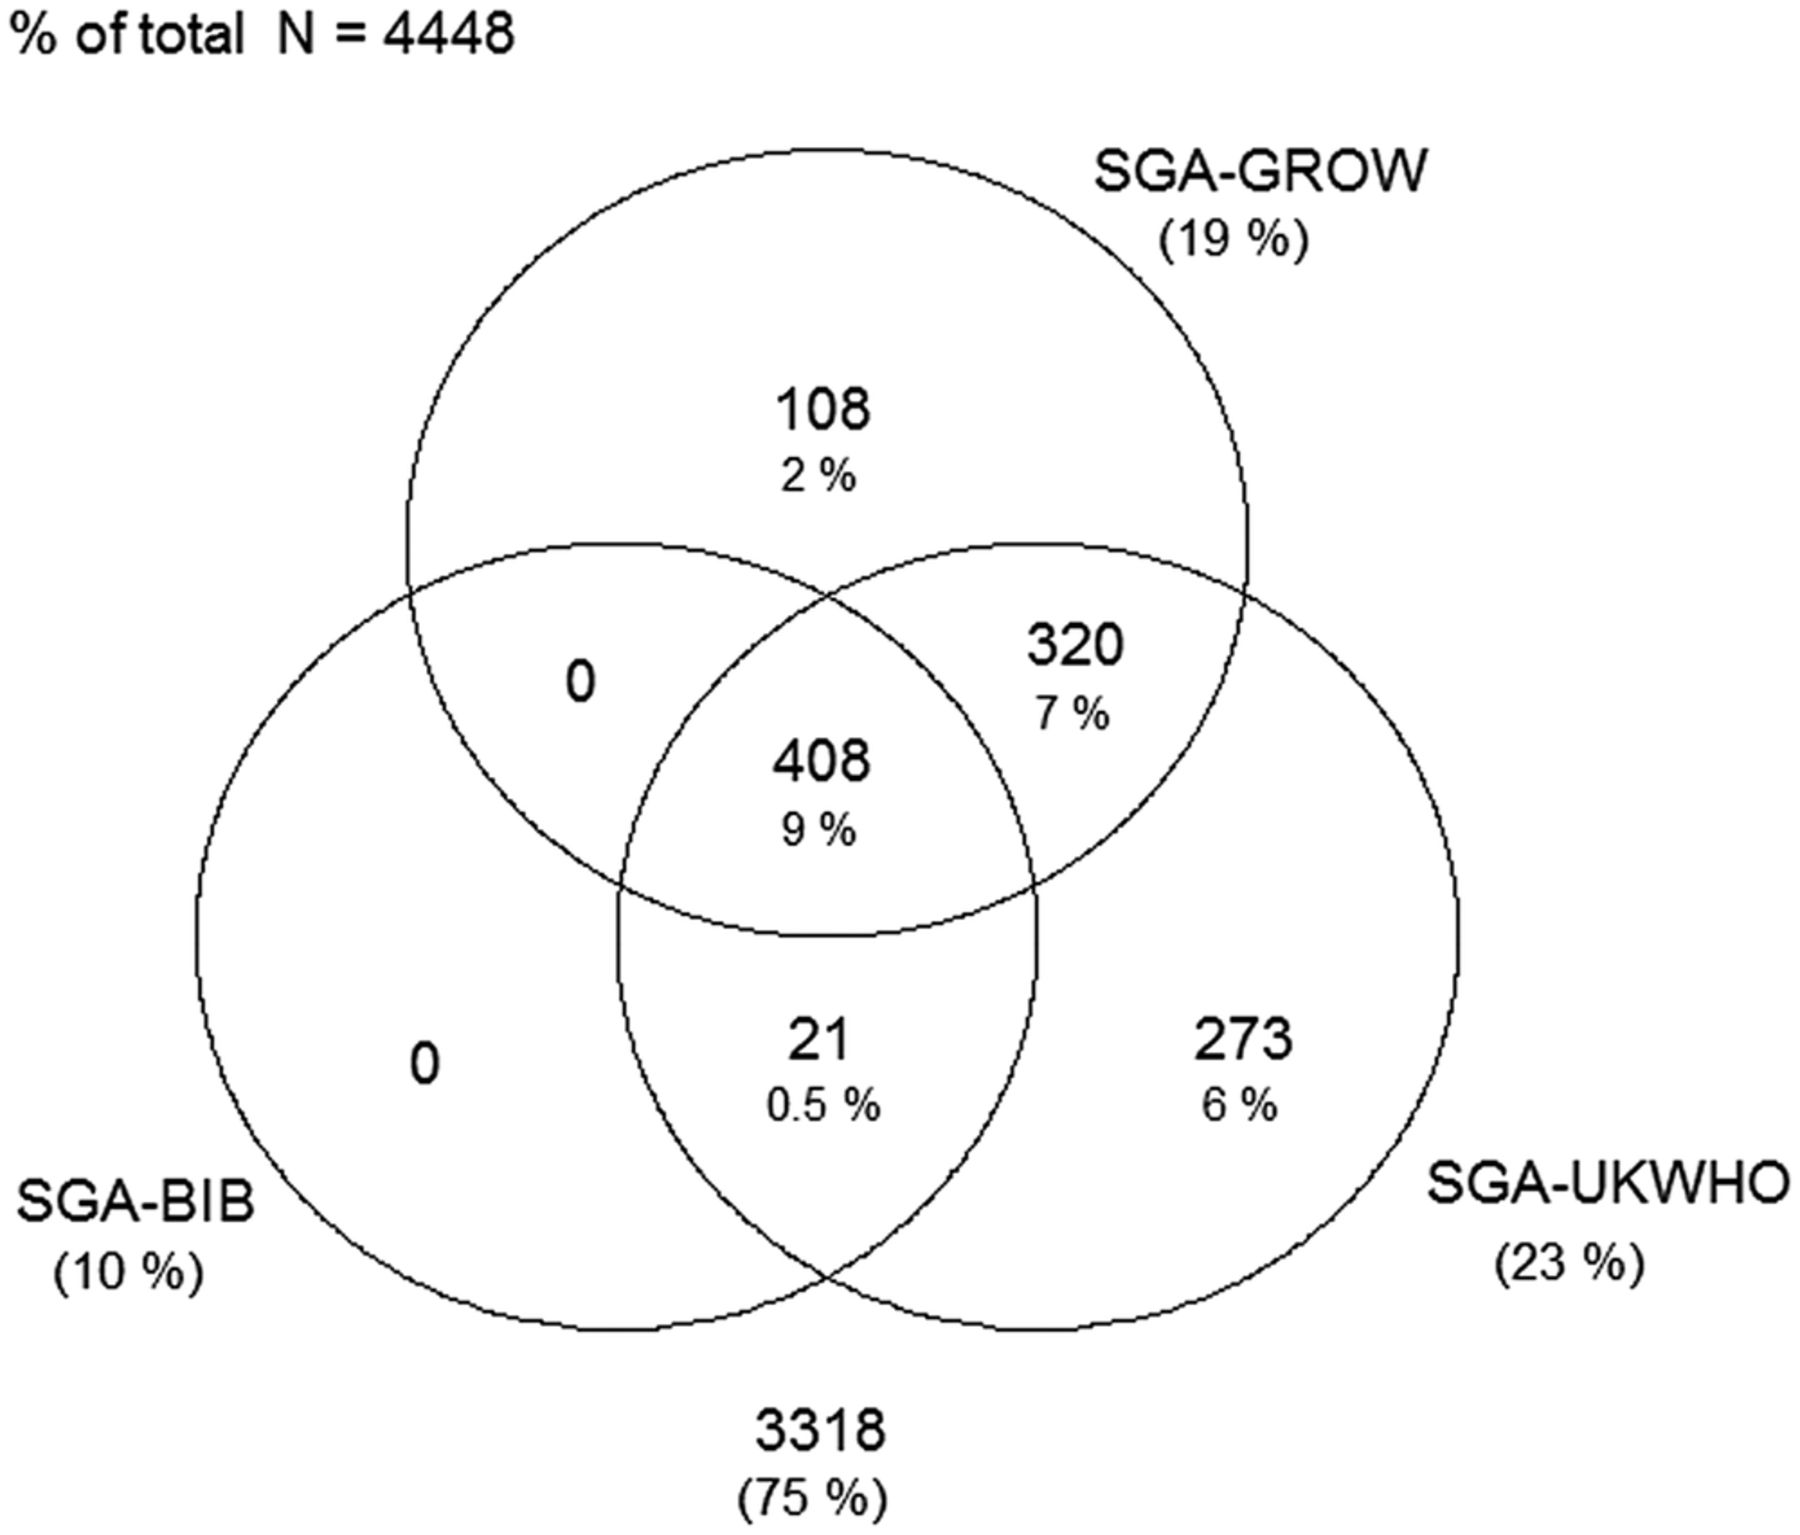 Small For Gestational Age And Large For Gestational Age